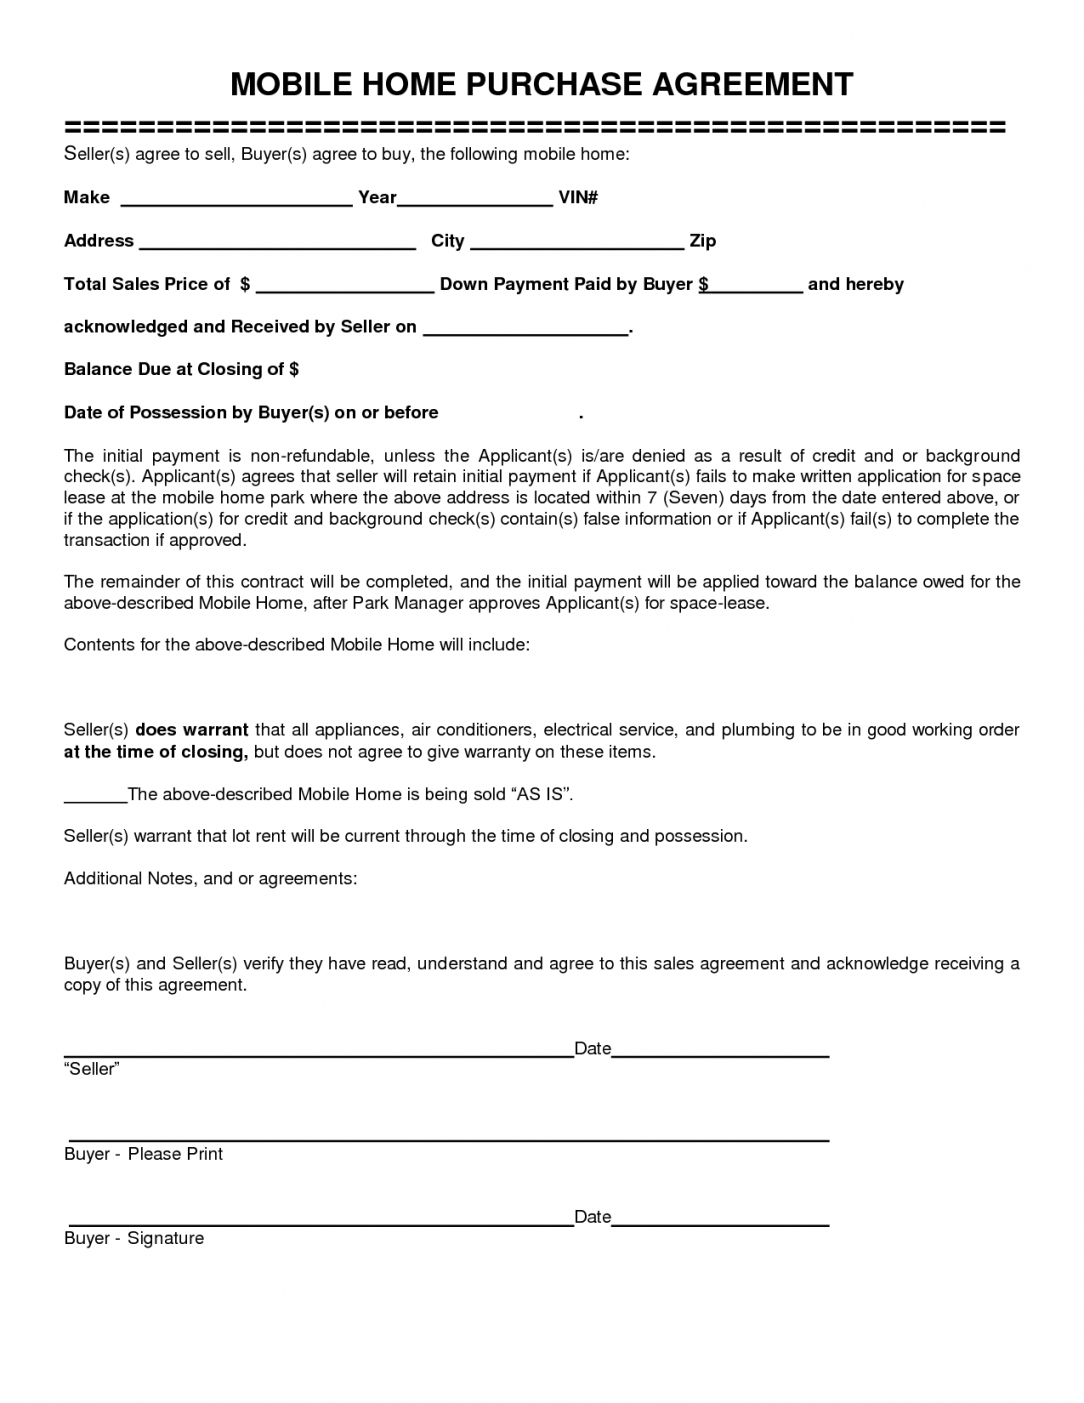 Sale Agreement Format For Mobile Phone Fill Online, Printable